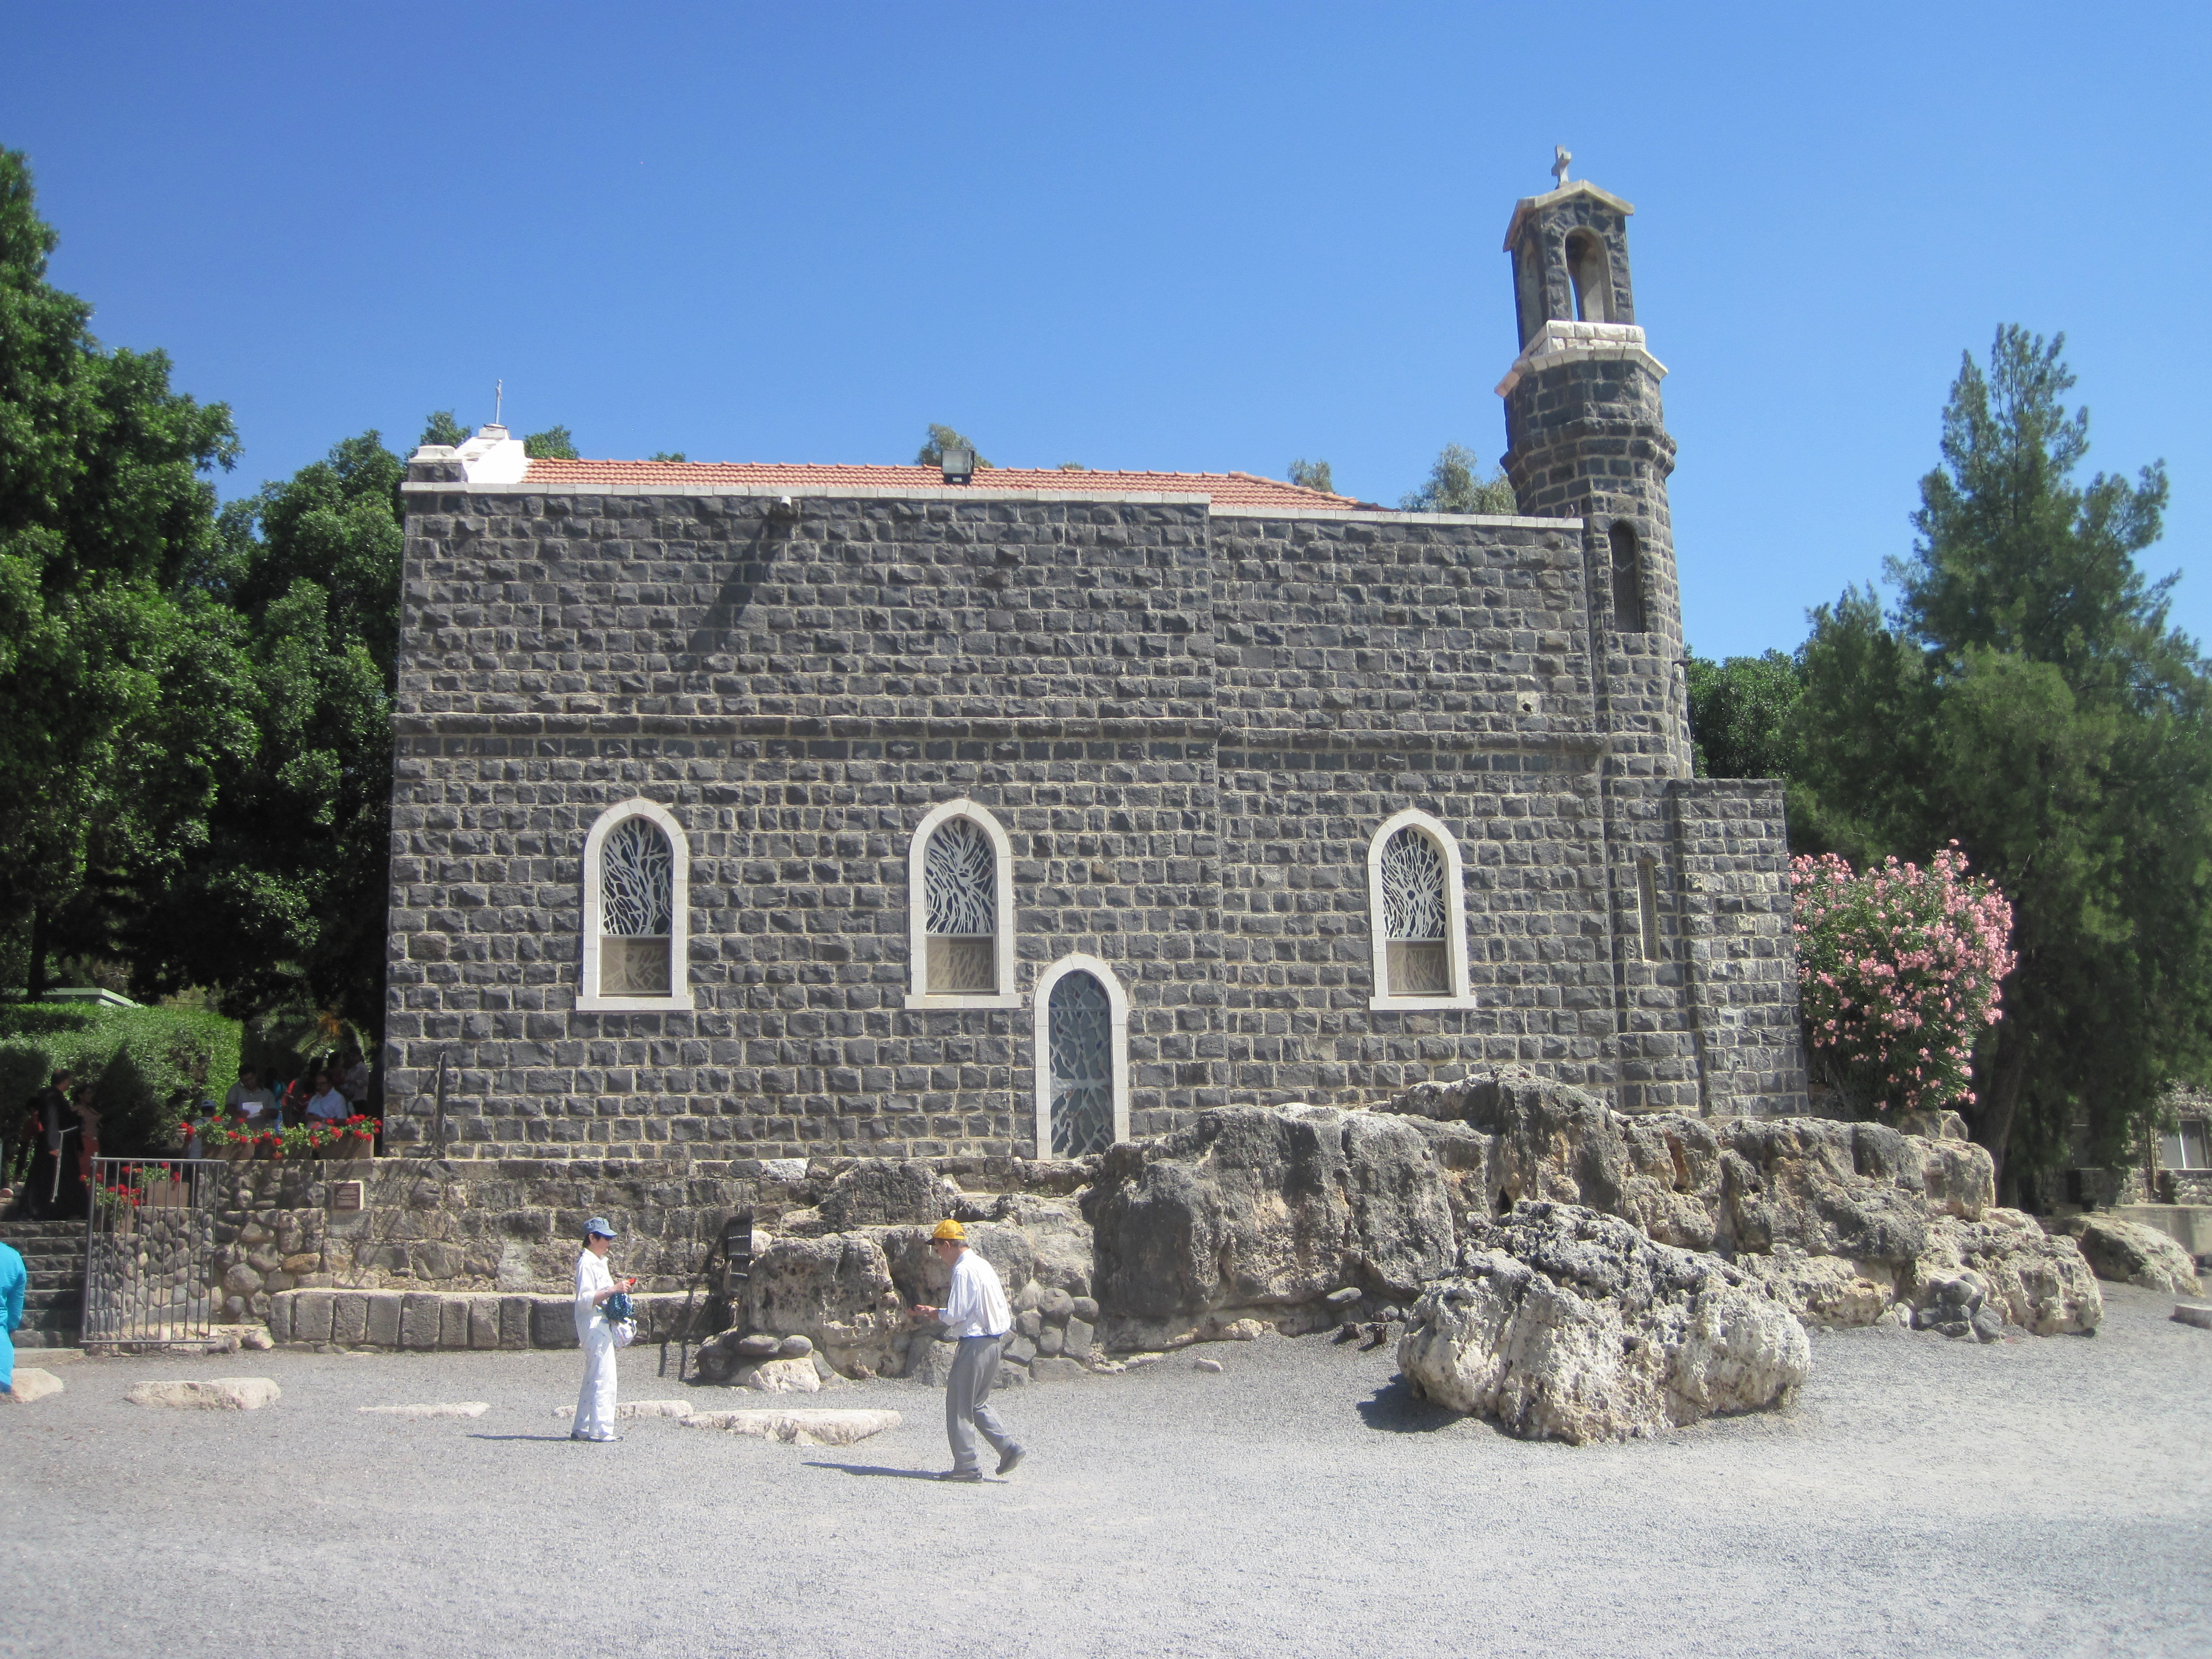 St Peter's Church Tiberias, loaves and fishes | To Repair the Broken Net